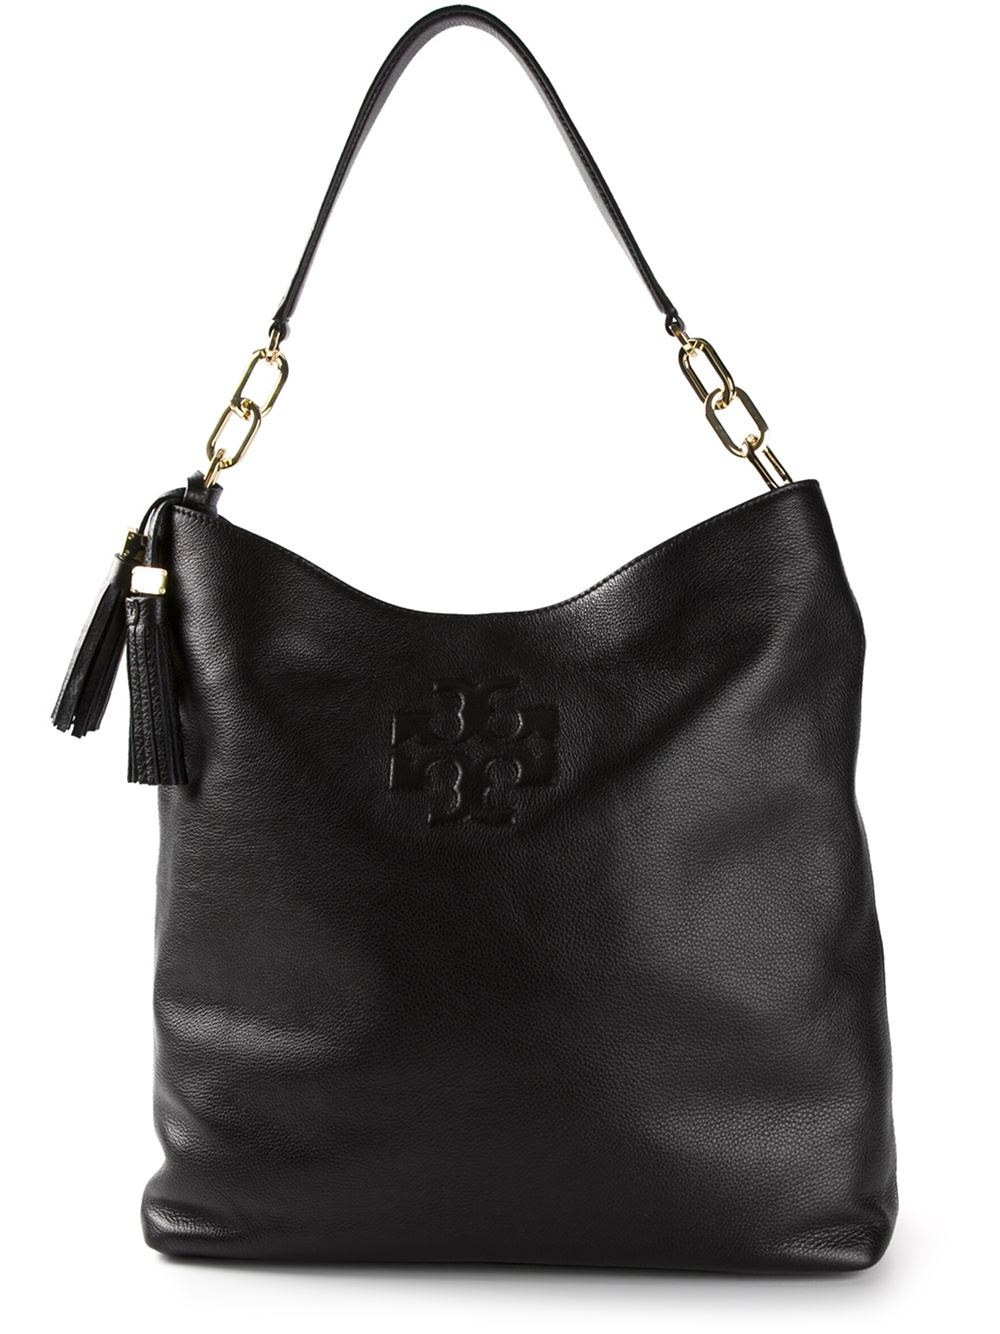 Tory burch 'Thea Hobo' Bag in Black